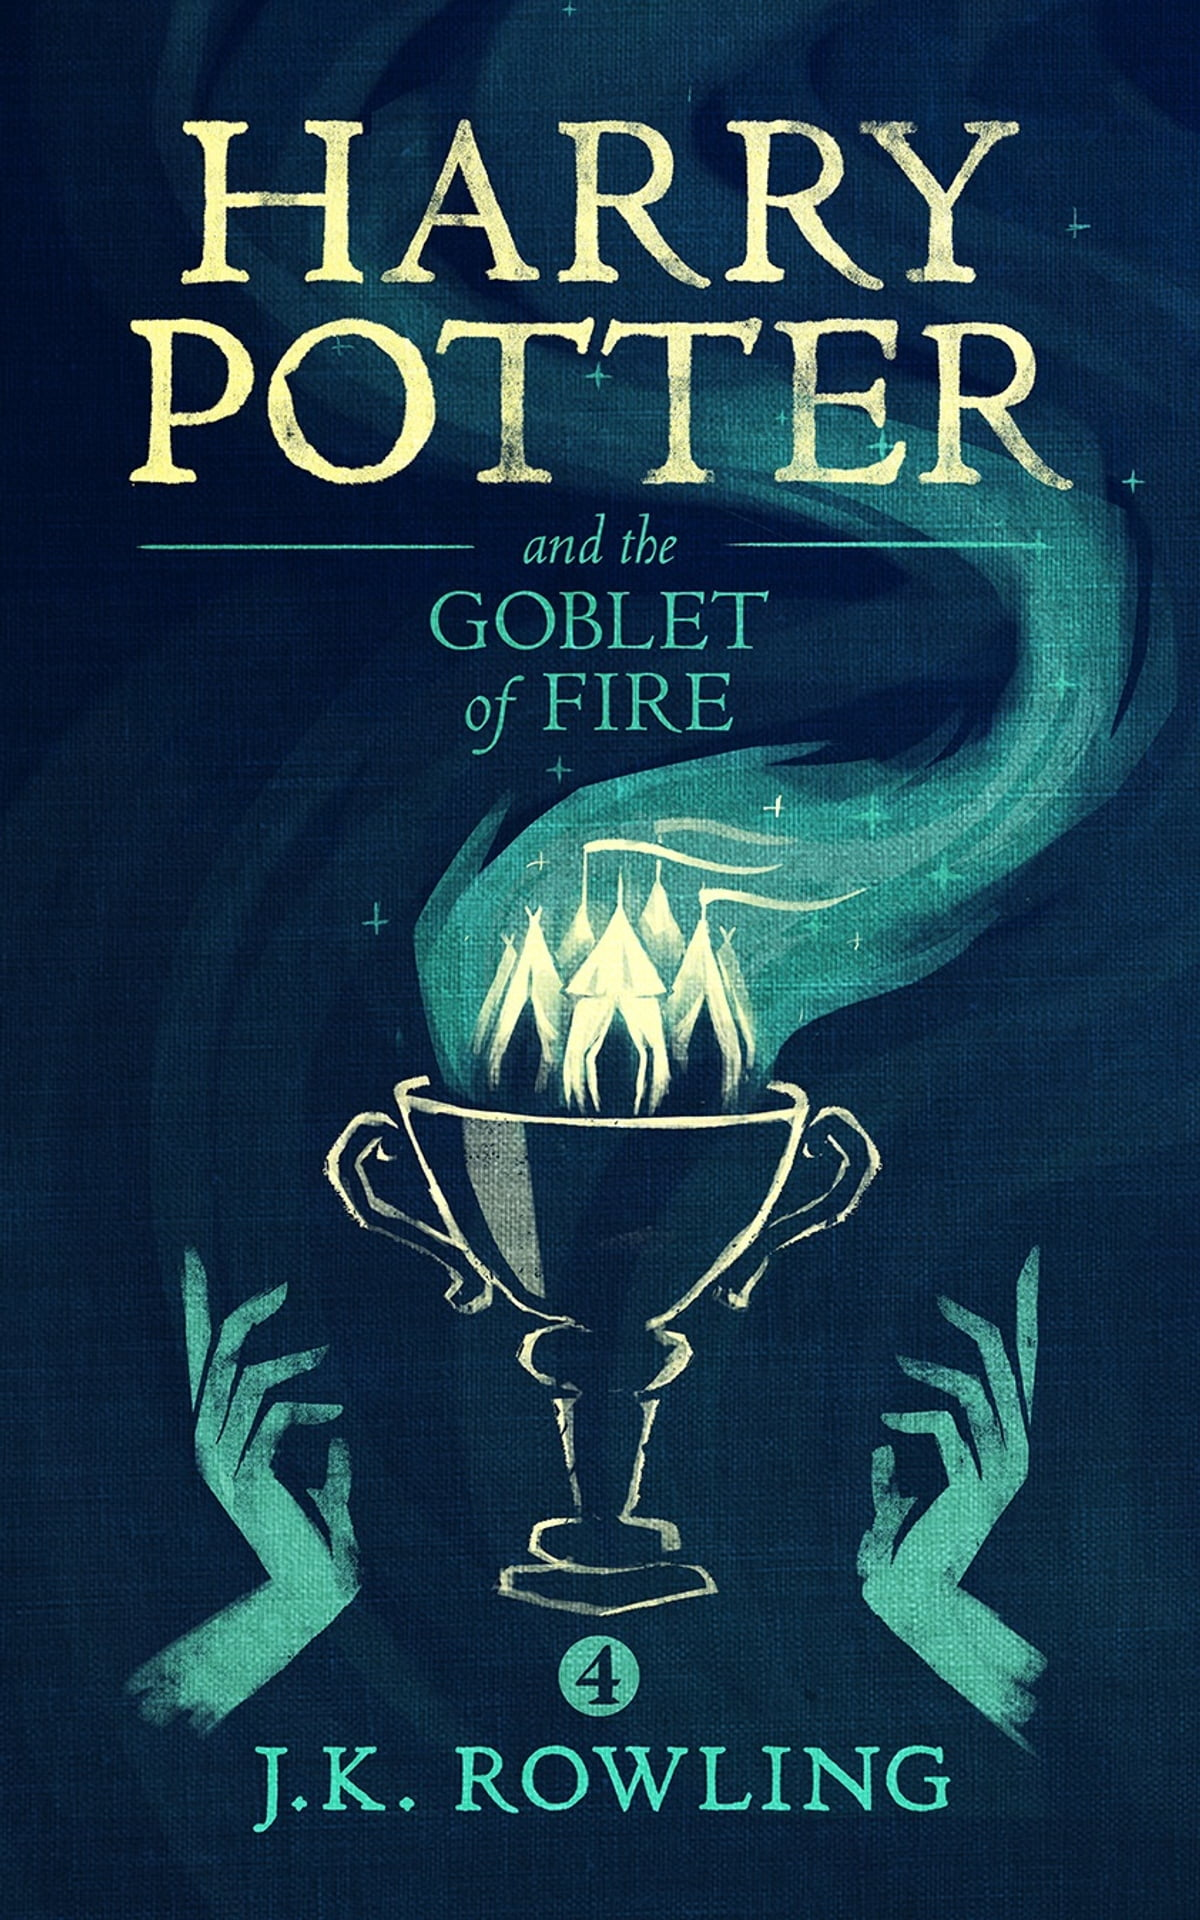 Libros Sobre Harry Potter Harry Potter And The Goblet Of Fire Ebooks By J K Rowling Rakuten Kobo